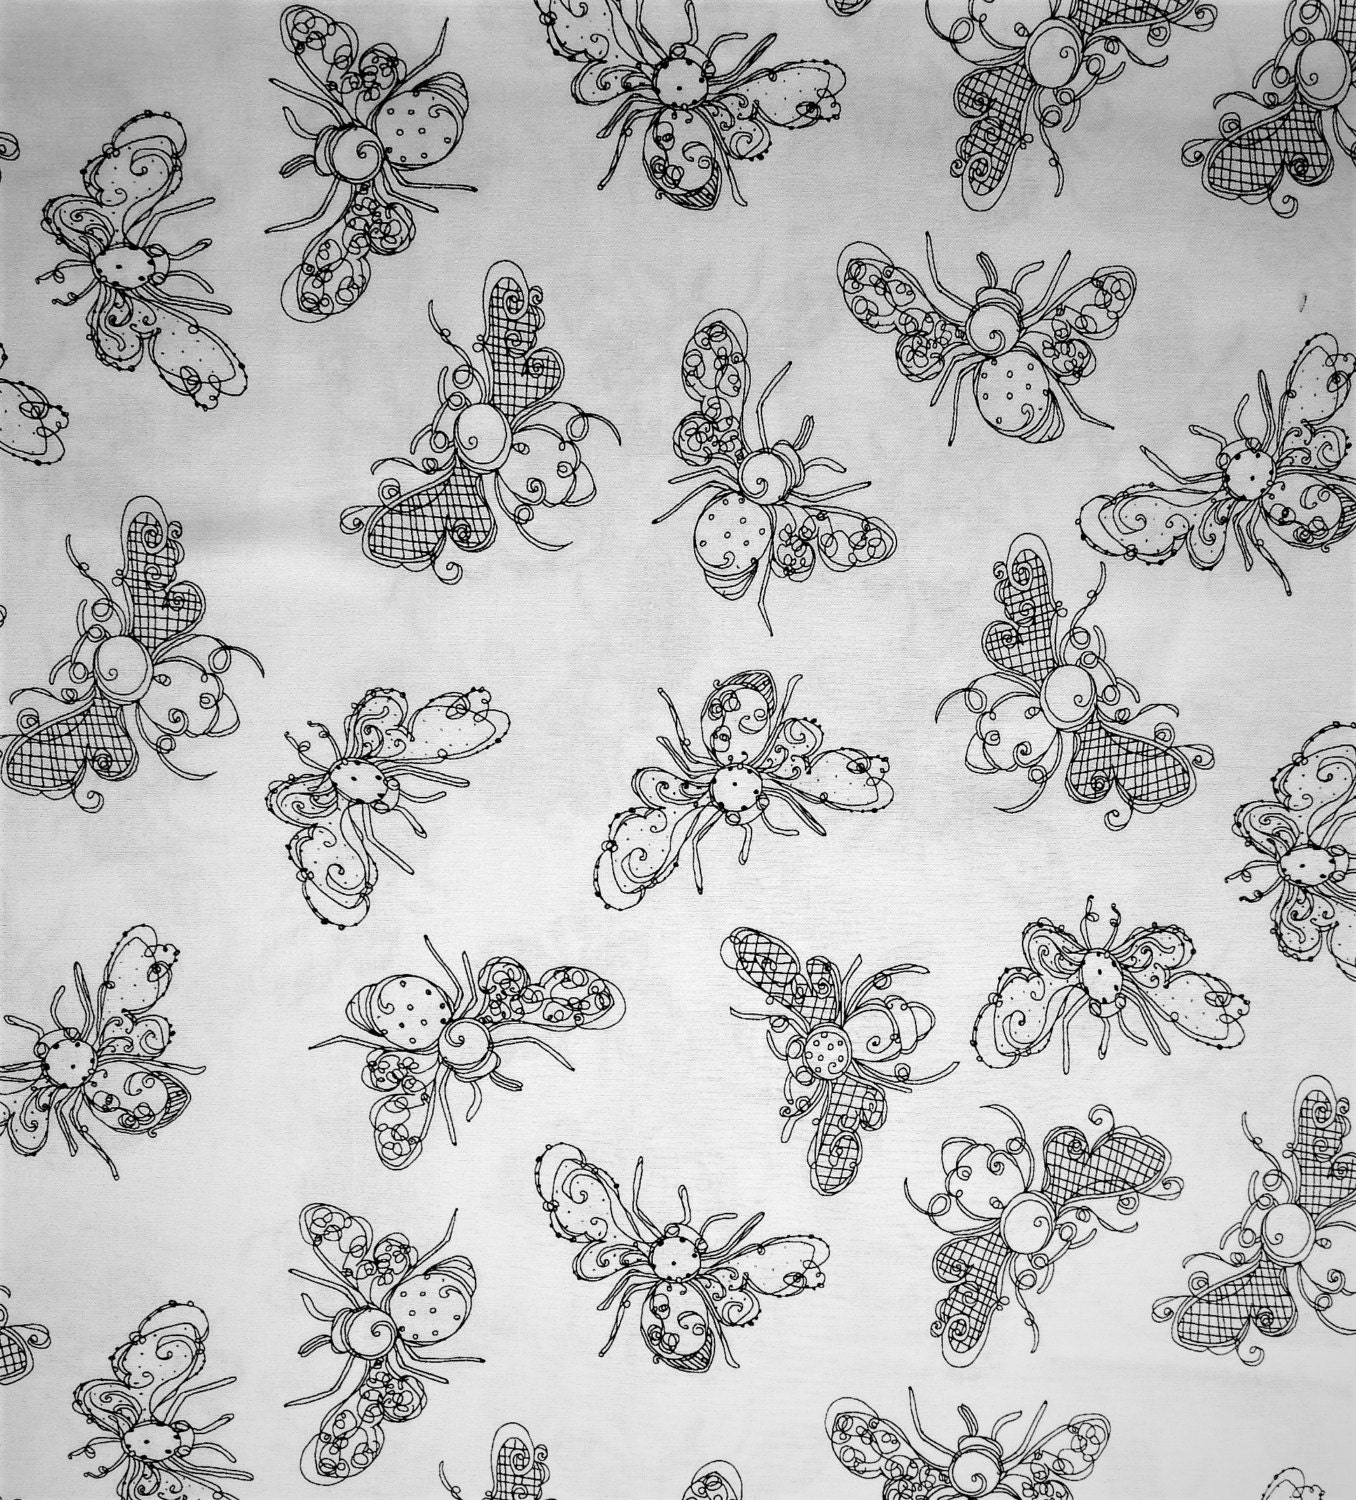 Busy bee loralie designs novelty craft quilting insect for Black and white childrens fabric